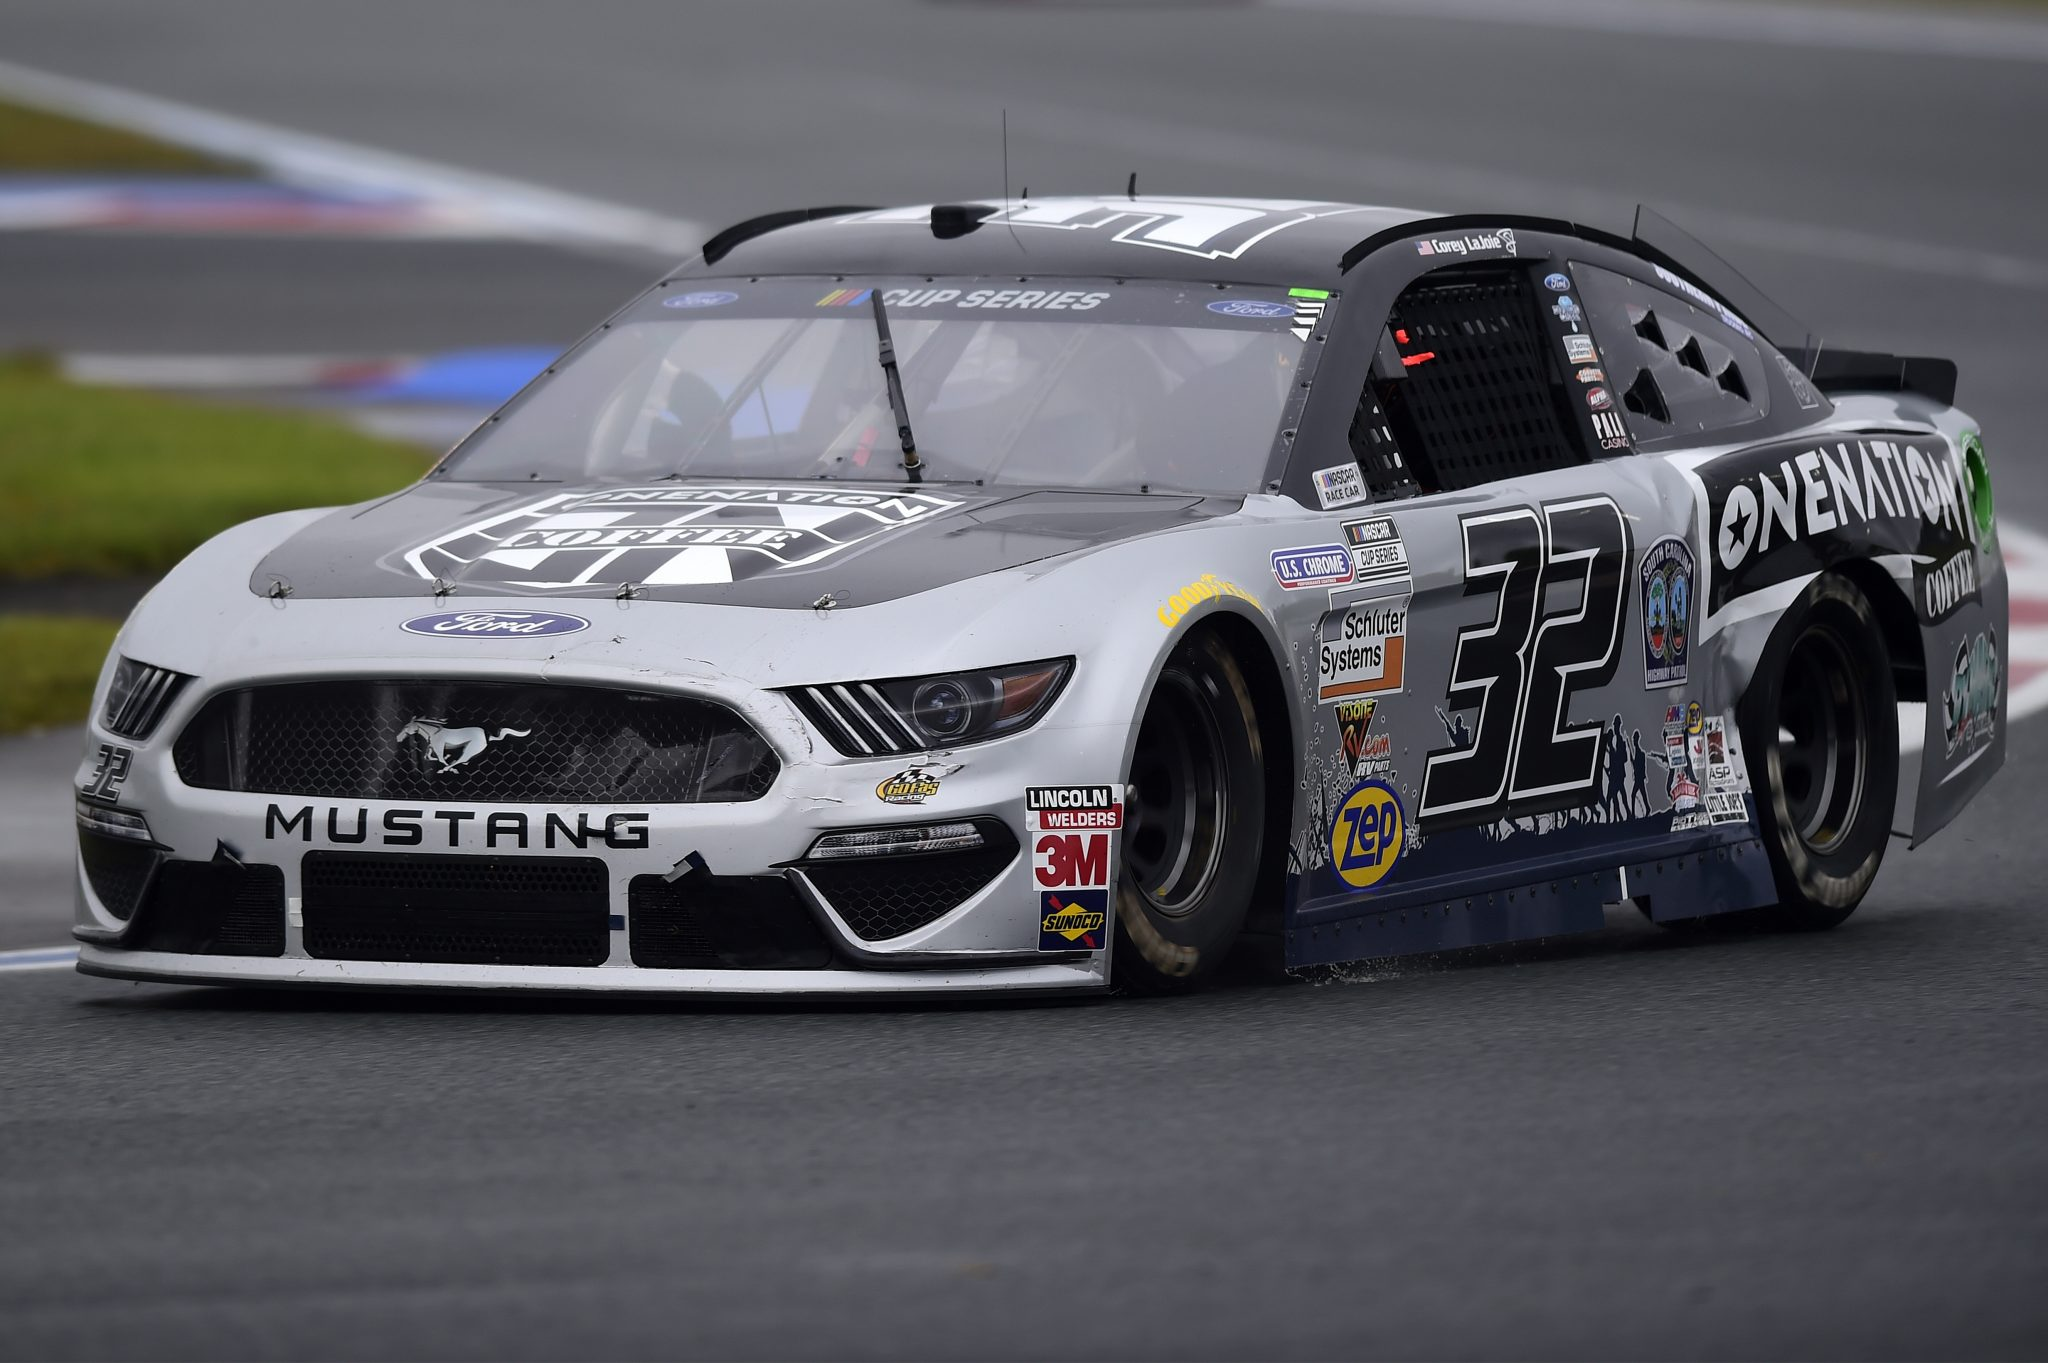 CONCORD, NORTH CAROLINA - OCTOBER 11: Corey LaJoie, driver of the #32 OneNation Coffee Ford, drives during the NASCAR Cup Series Bank of America ROVAL 400 at Charlotte Motor Speedway on October 11, 2020 in Concord, North Carolina. (Photo by Jared C. Tilton/Getty Images) | Getty Images